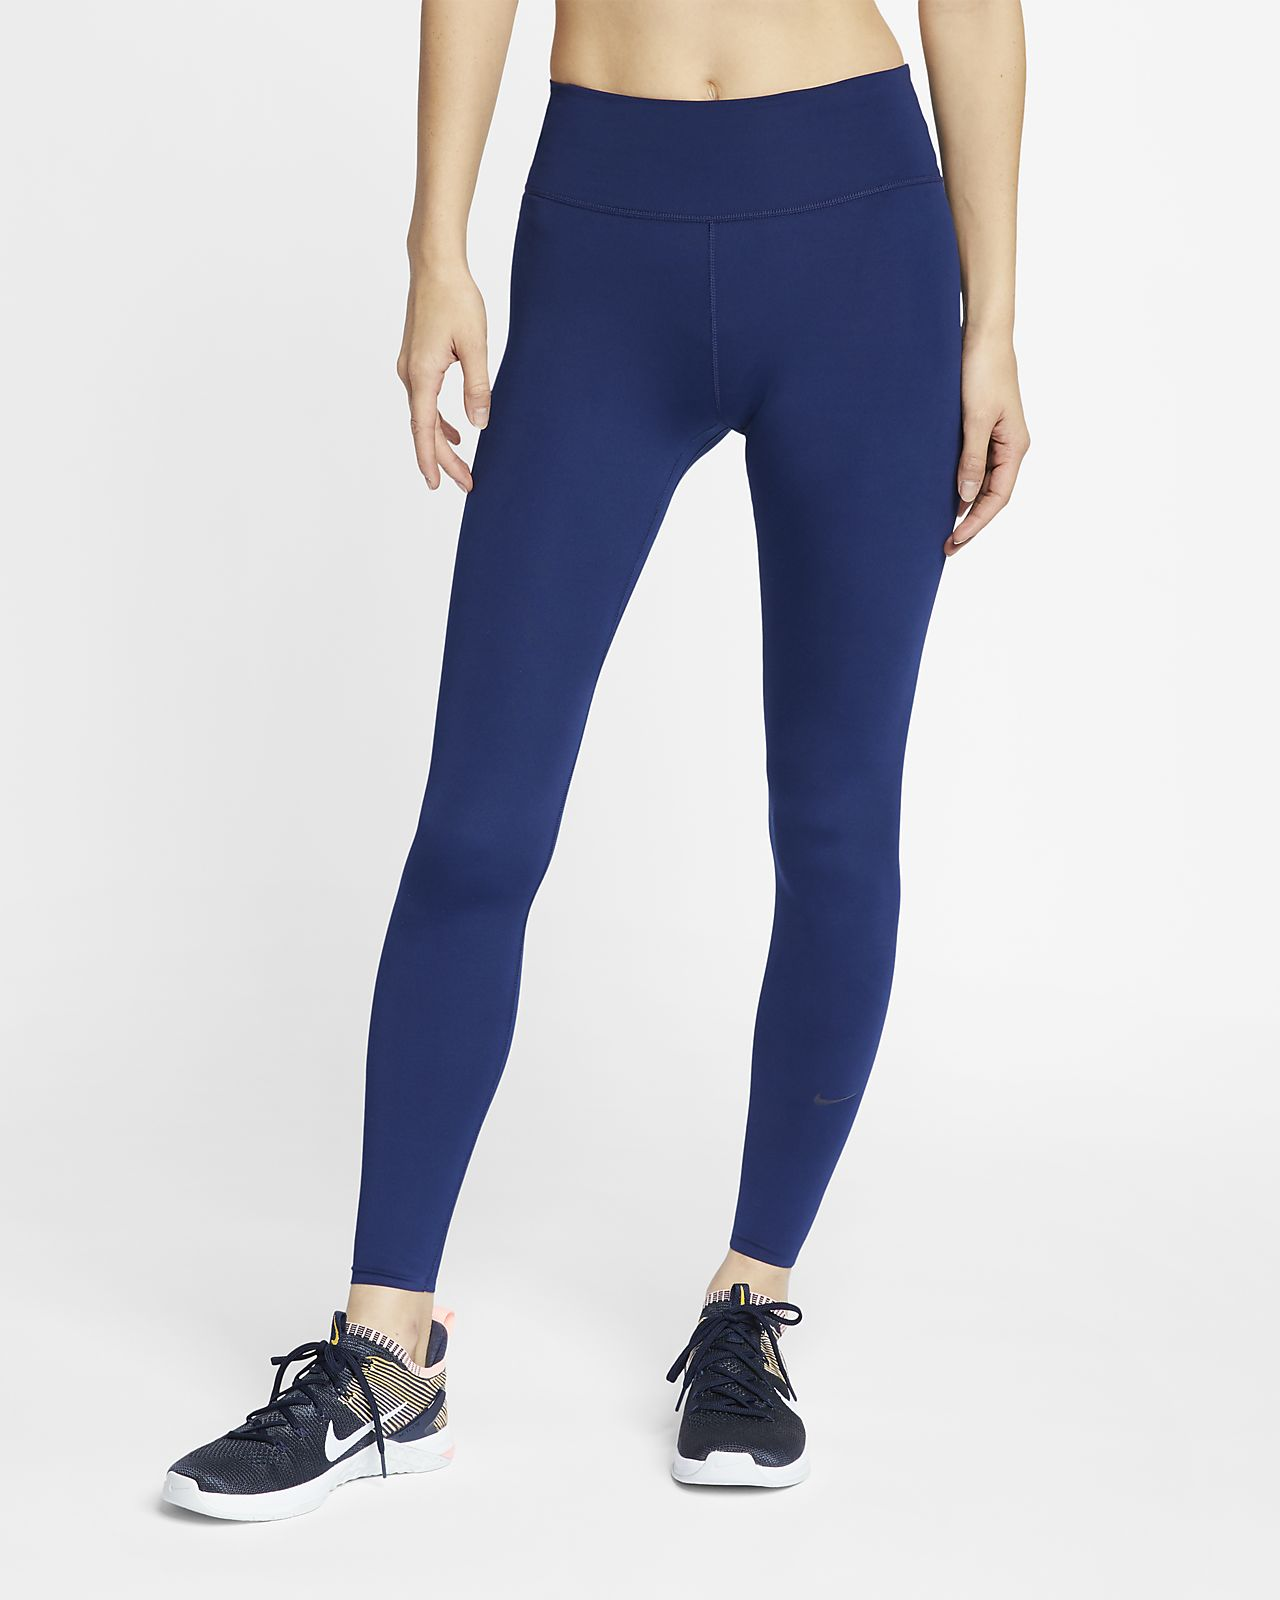 Nike One Luxe Women's Leggings